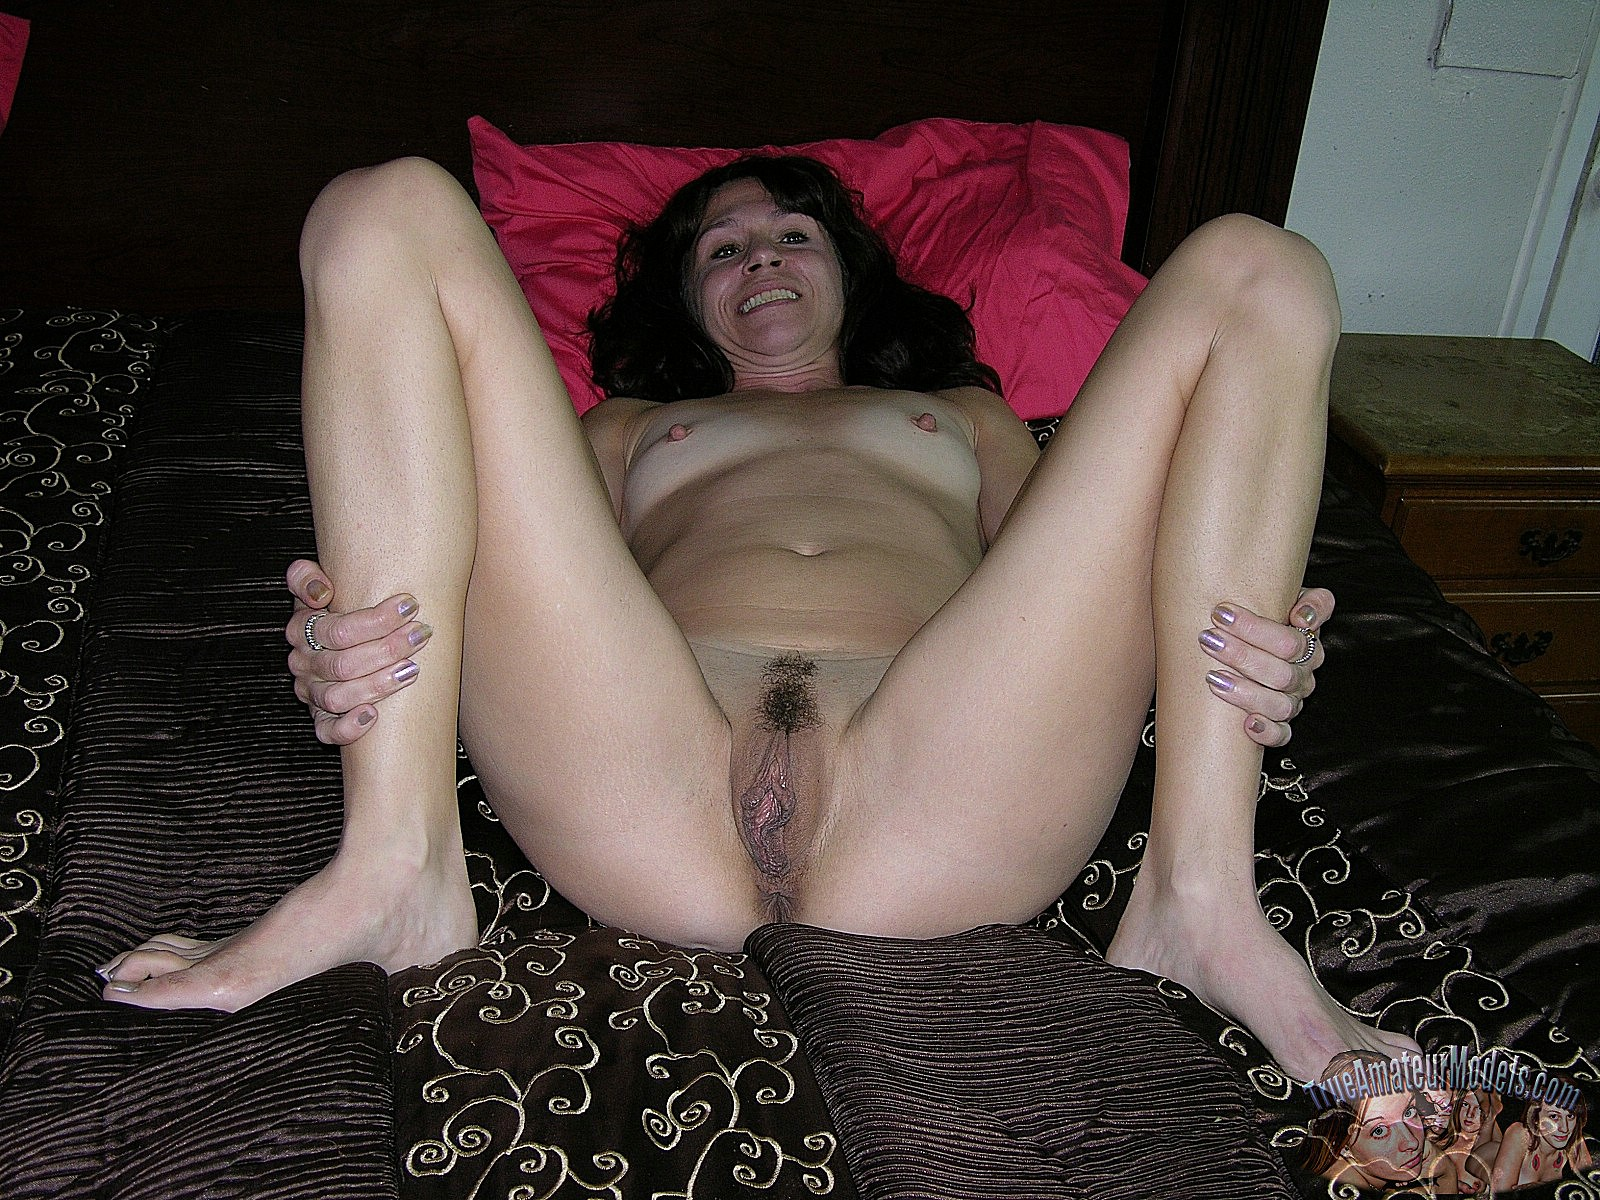 Real amateur nude girls pussy